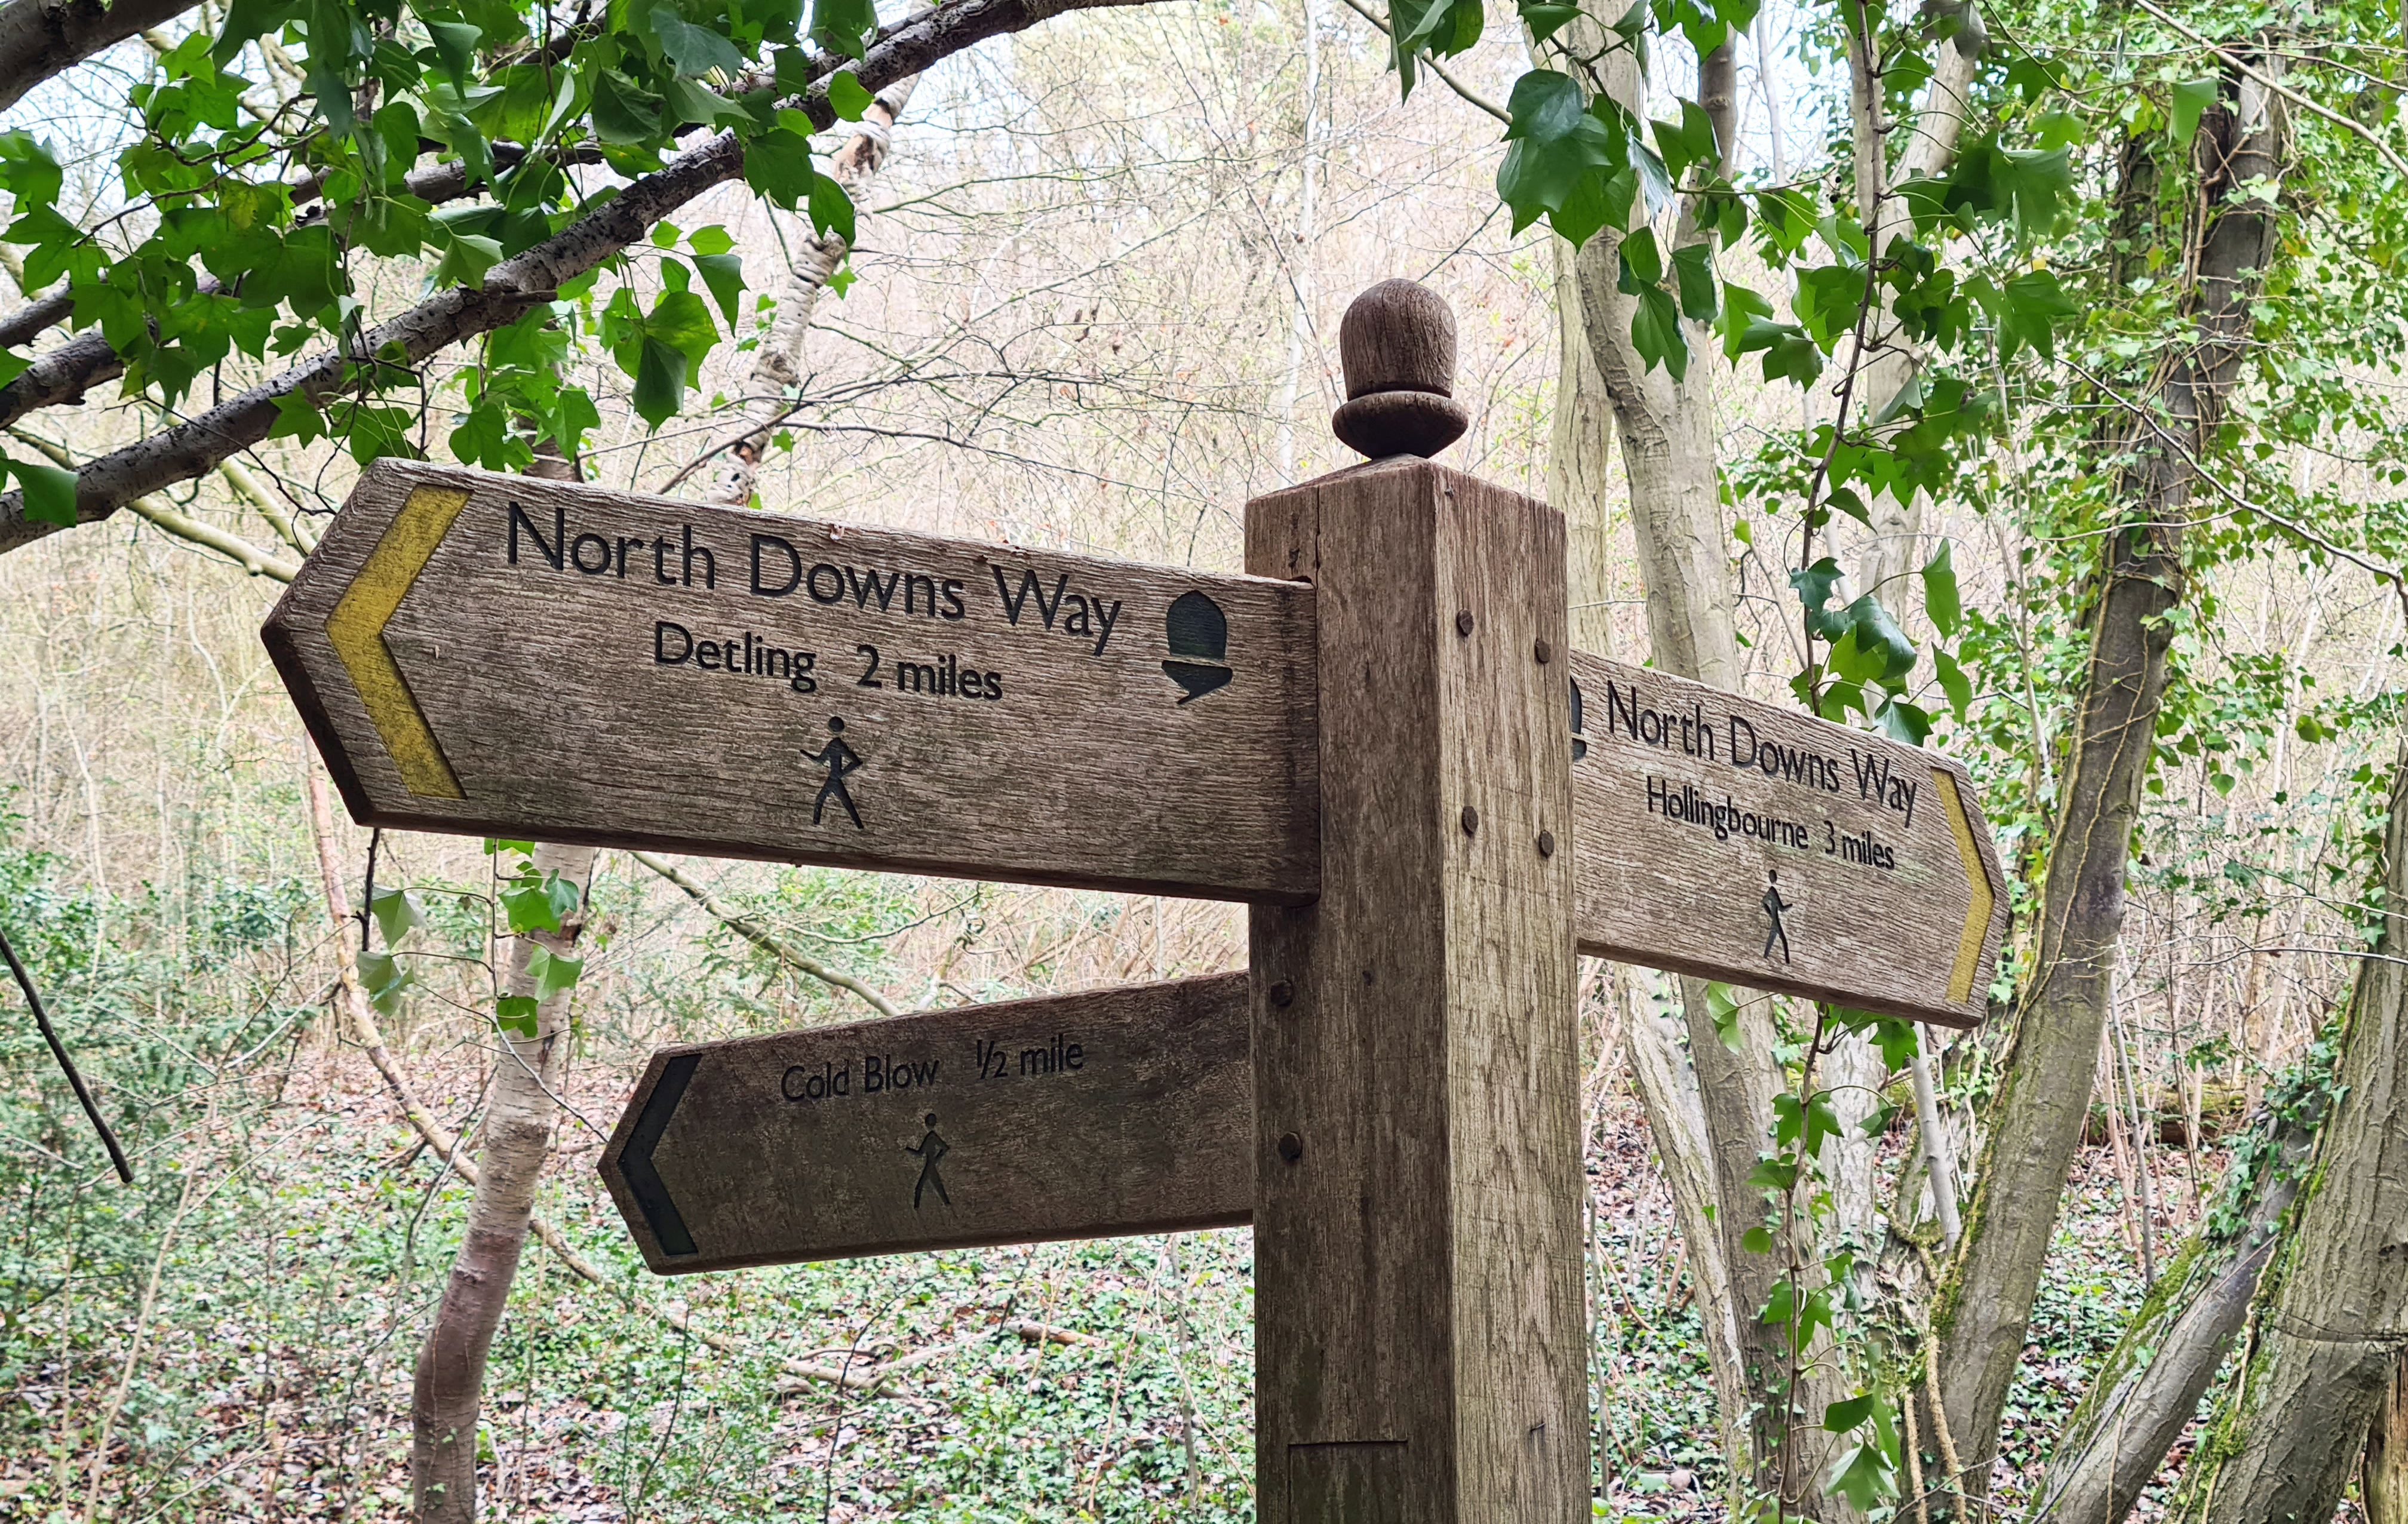 Part of my 'not-so-local local walk' takes in a few miles of the North Downs Way